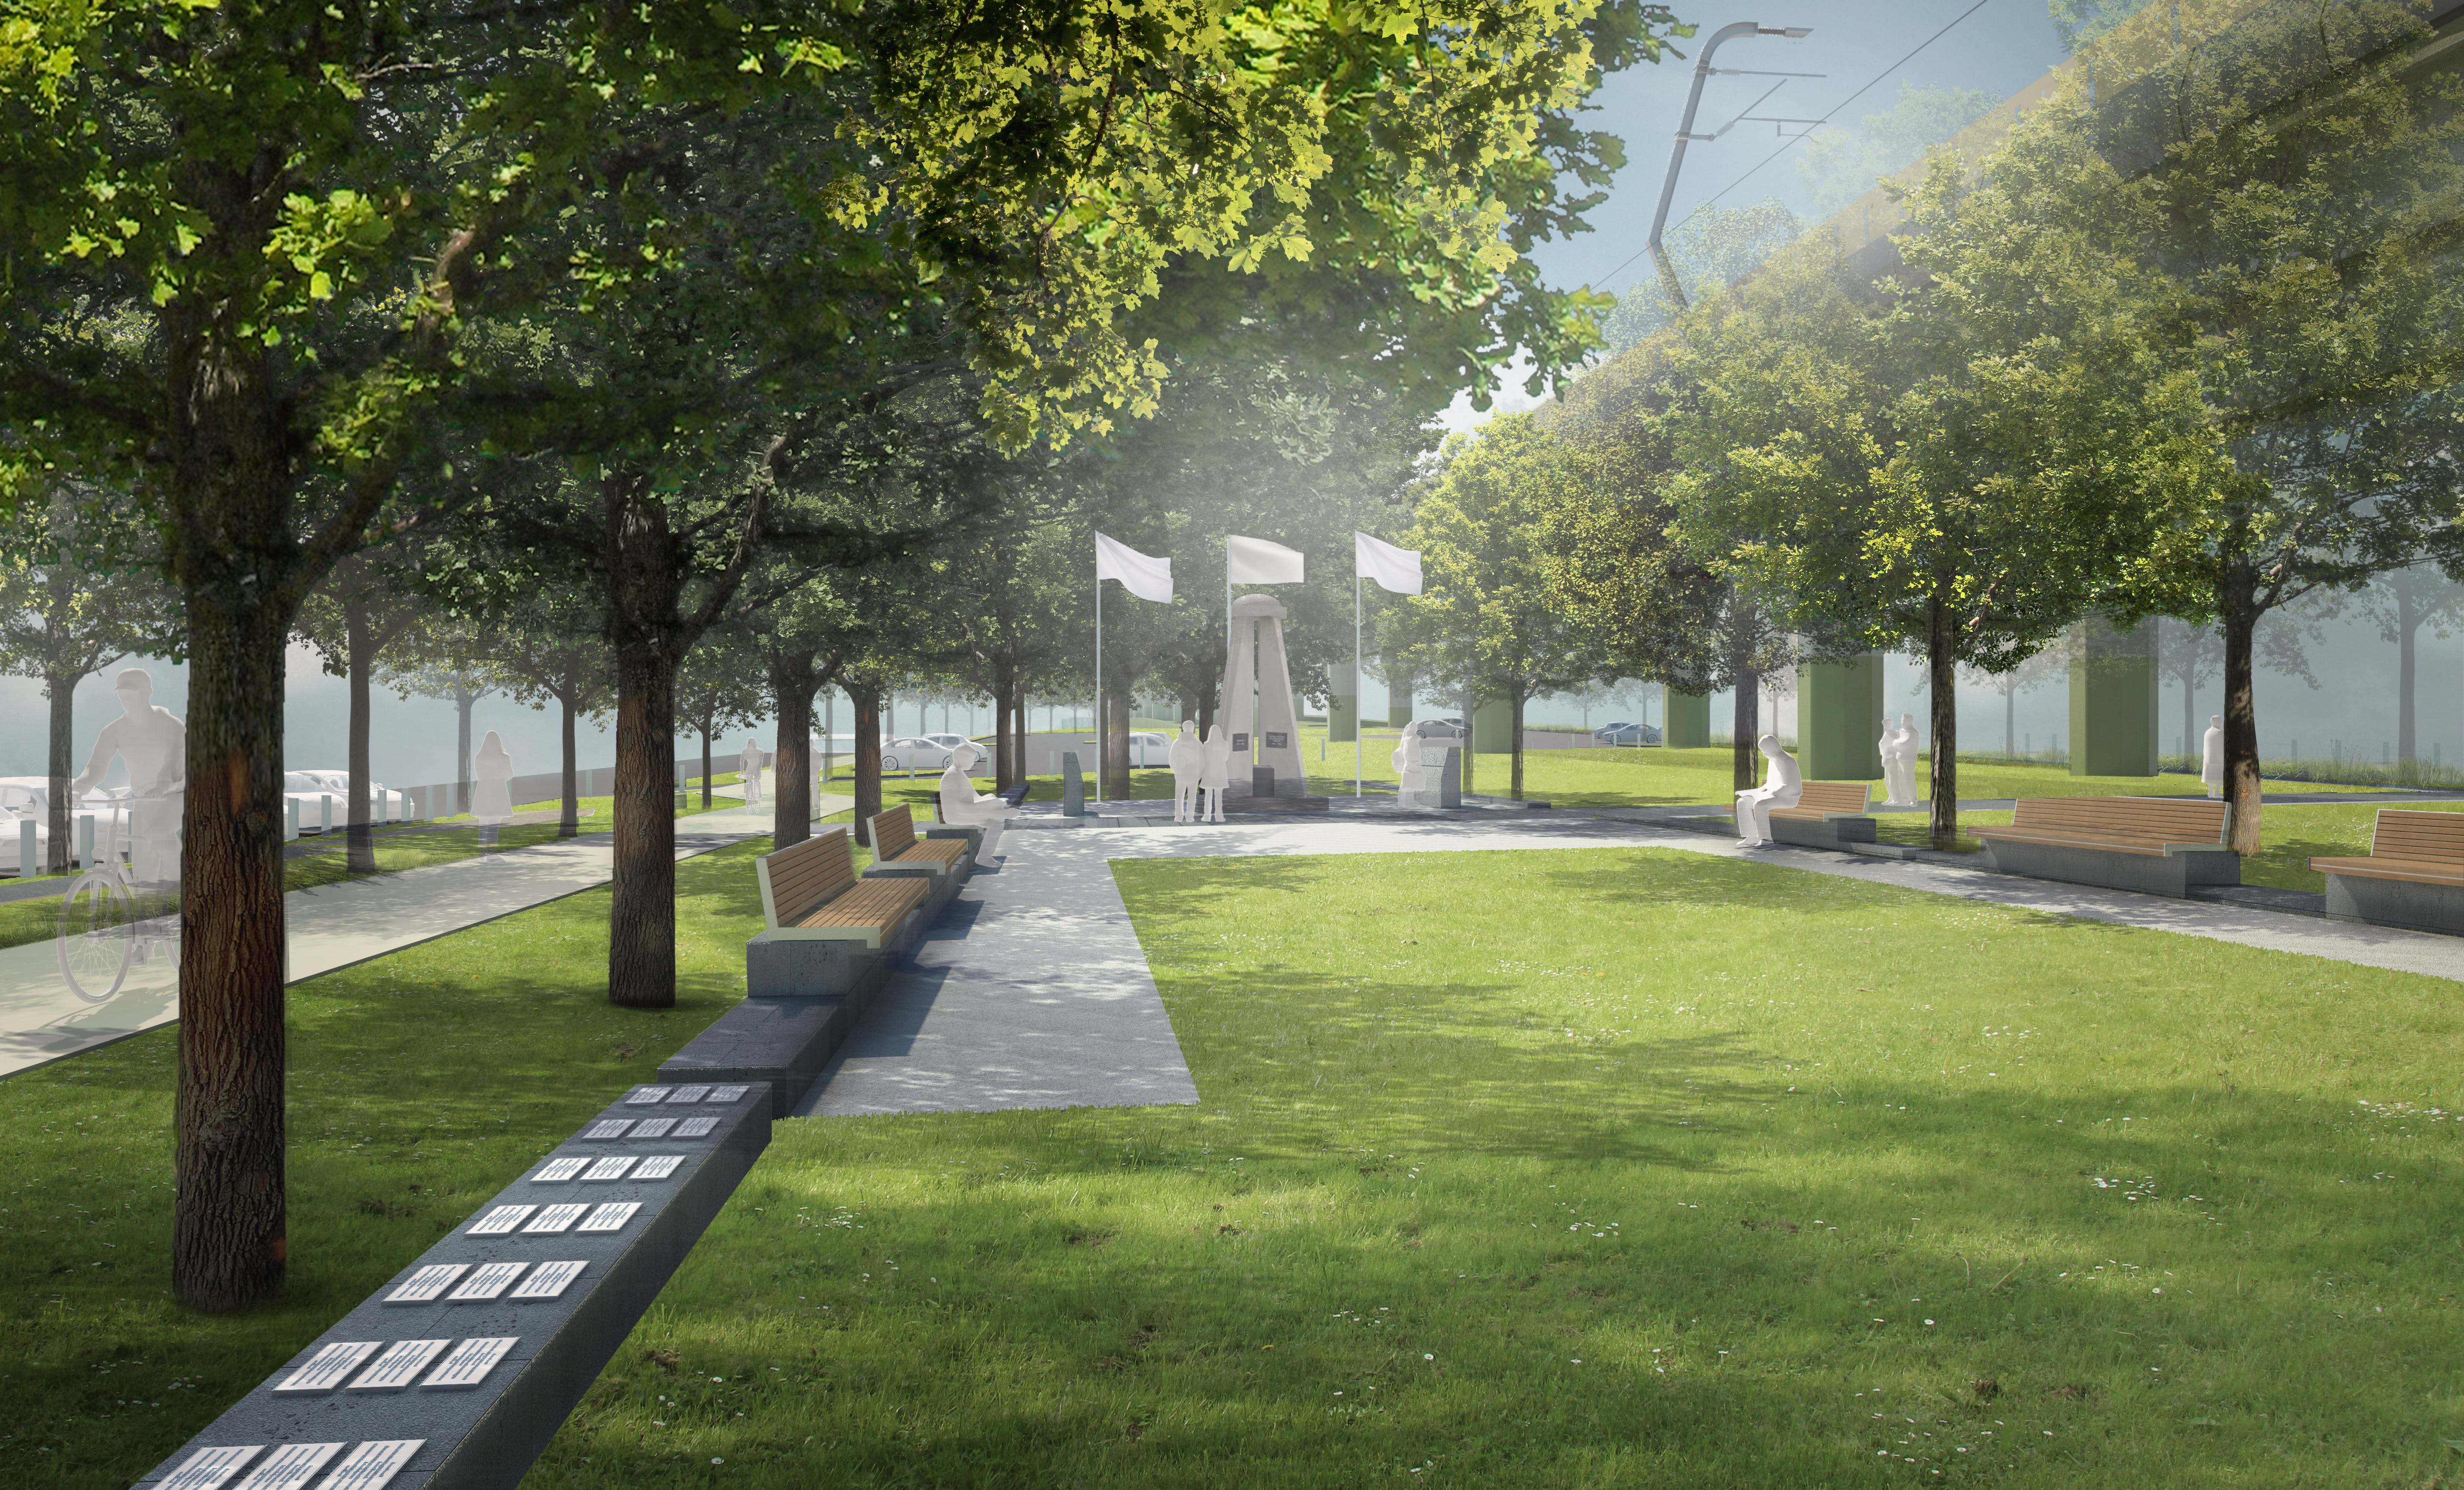 Artist impression - Centre Road (RSL memorial and ceremonial space), year 20